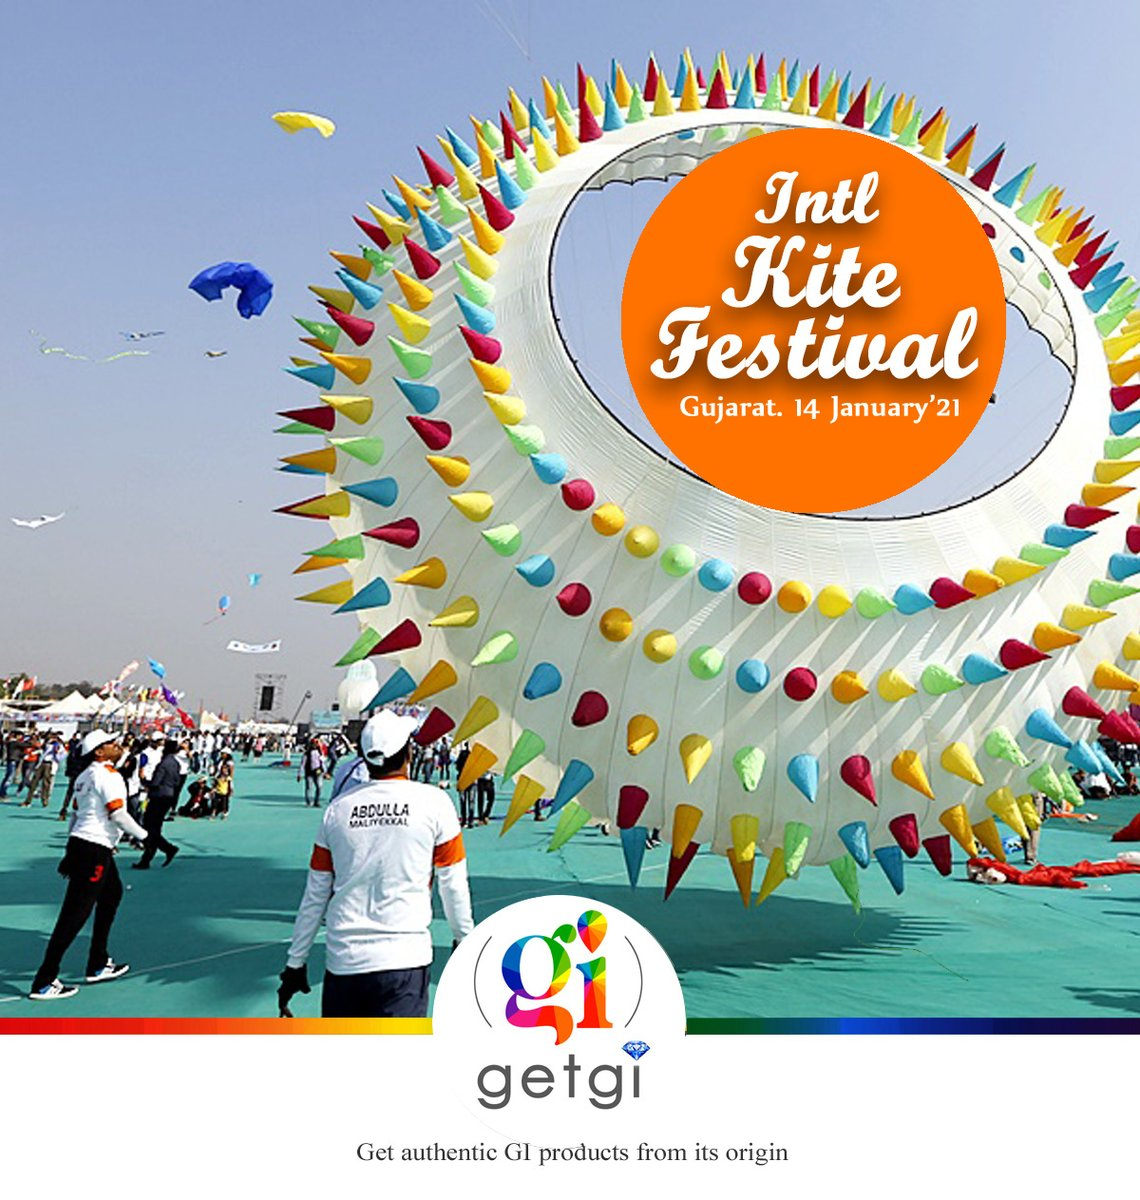 #internationalkitefestival Makar Sankranti is one of the most auspicious days of the year and it is celebrated in Gujarat as a magnificent Kite festival that happens every year with the utmost celebration. #getgi #kitefestival #intlkitefest  #uttarayan #uttarayan2021